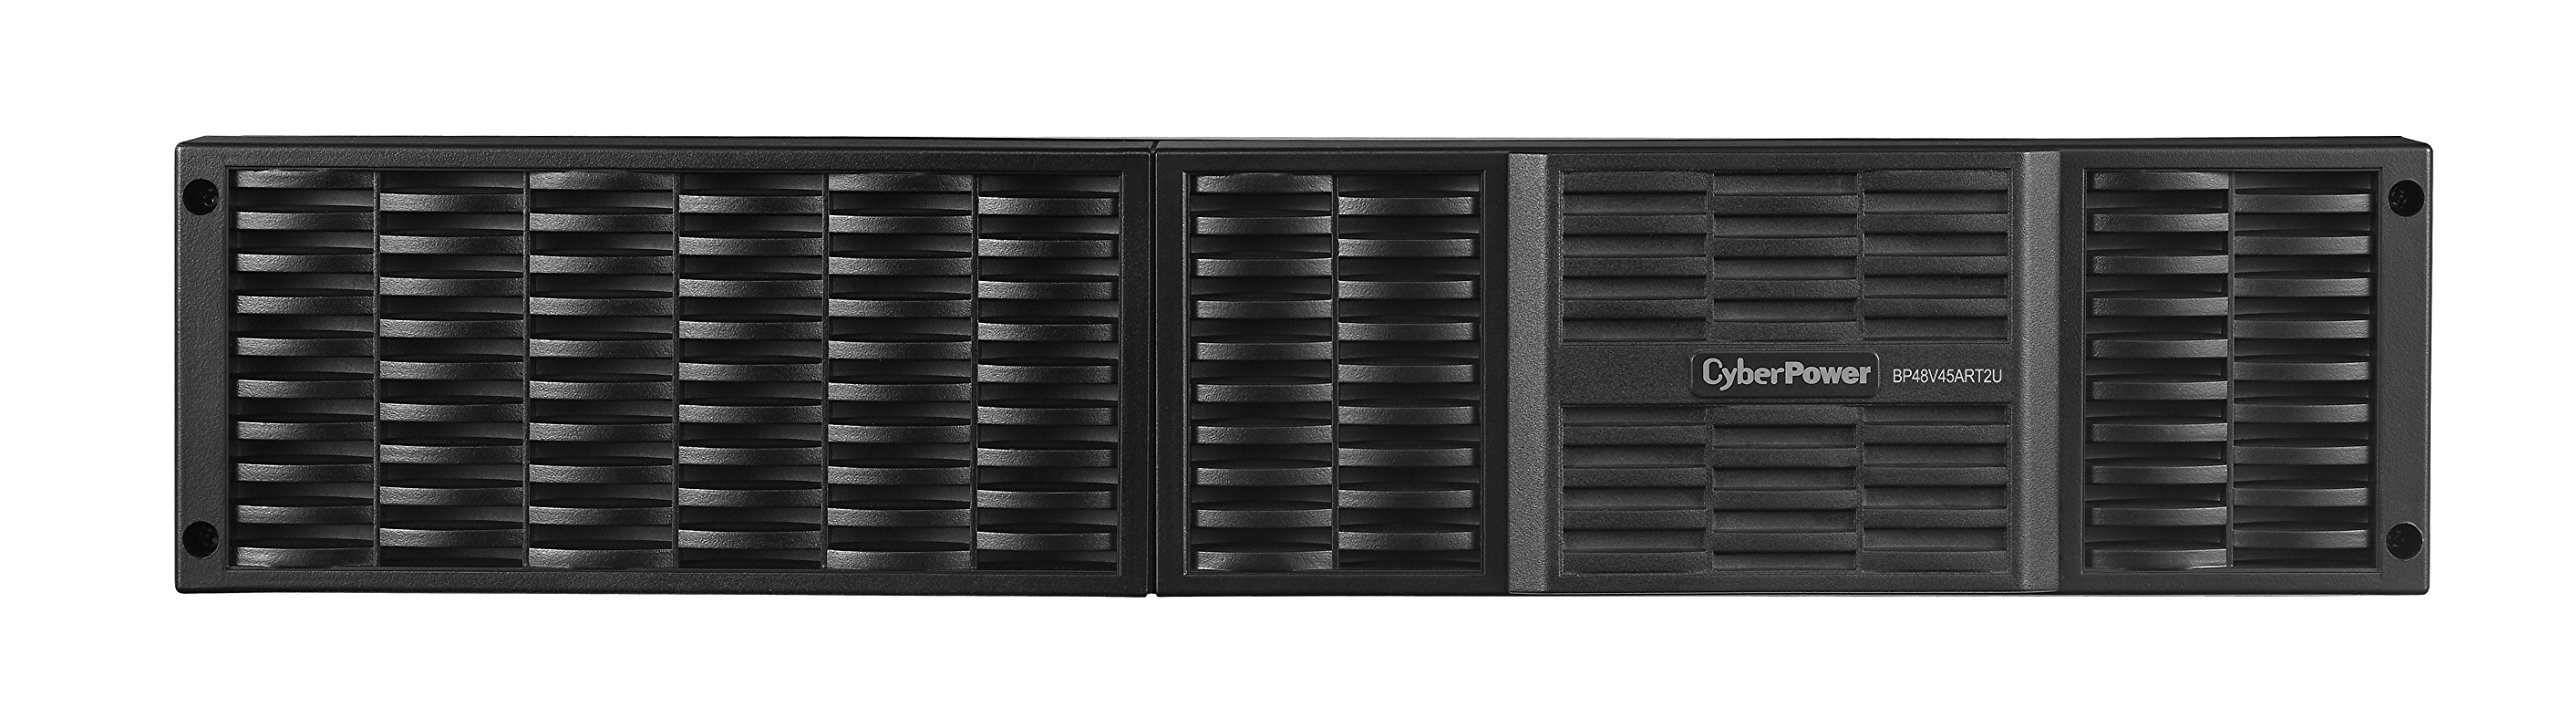 CyberPower BP48V75ART2U Extended Battery Module, 48V/45A, 2U Rack/Tower